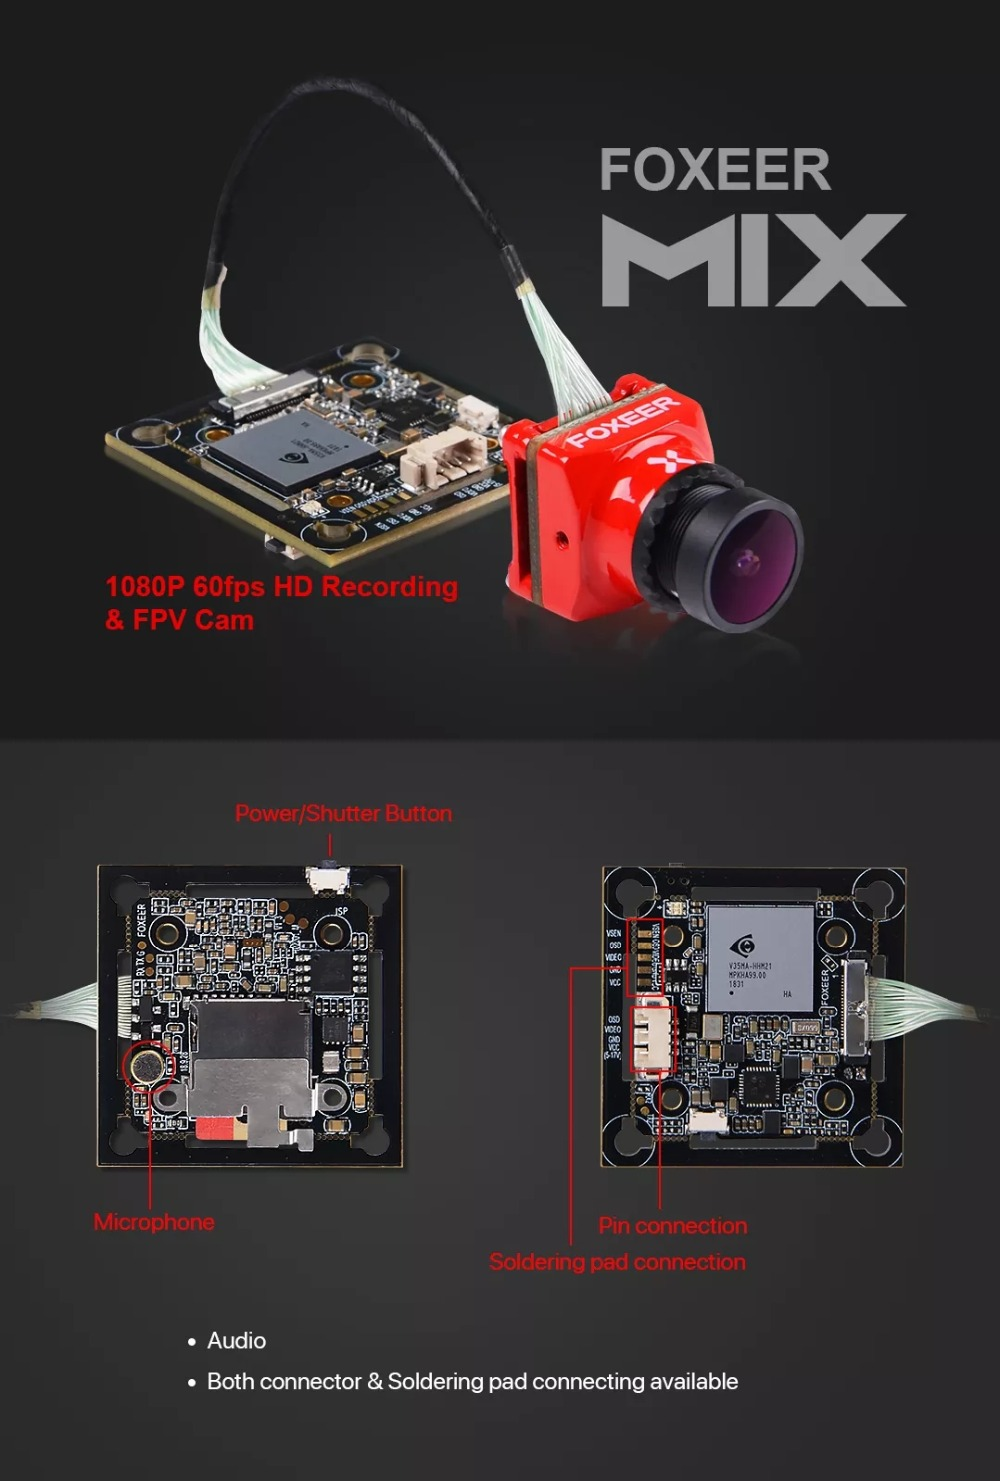 New style of 2019 Foxeer Mix 16:9/4:3 PAL/NTSC Switchable 1080p 60fps Super WDR Mini HD FPV Camera For RC Drone New style of 2019 Foxeer Mix 16:9/4:3 PAL/NTSC Switchable 1080p 60fps Super WDR Mini HD FPV Camera For RC Drone